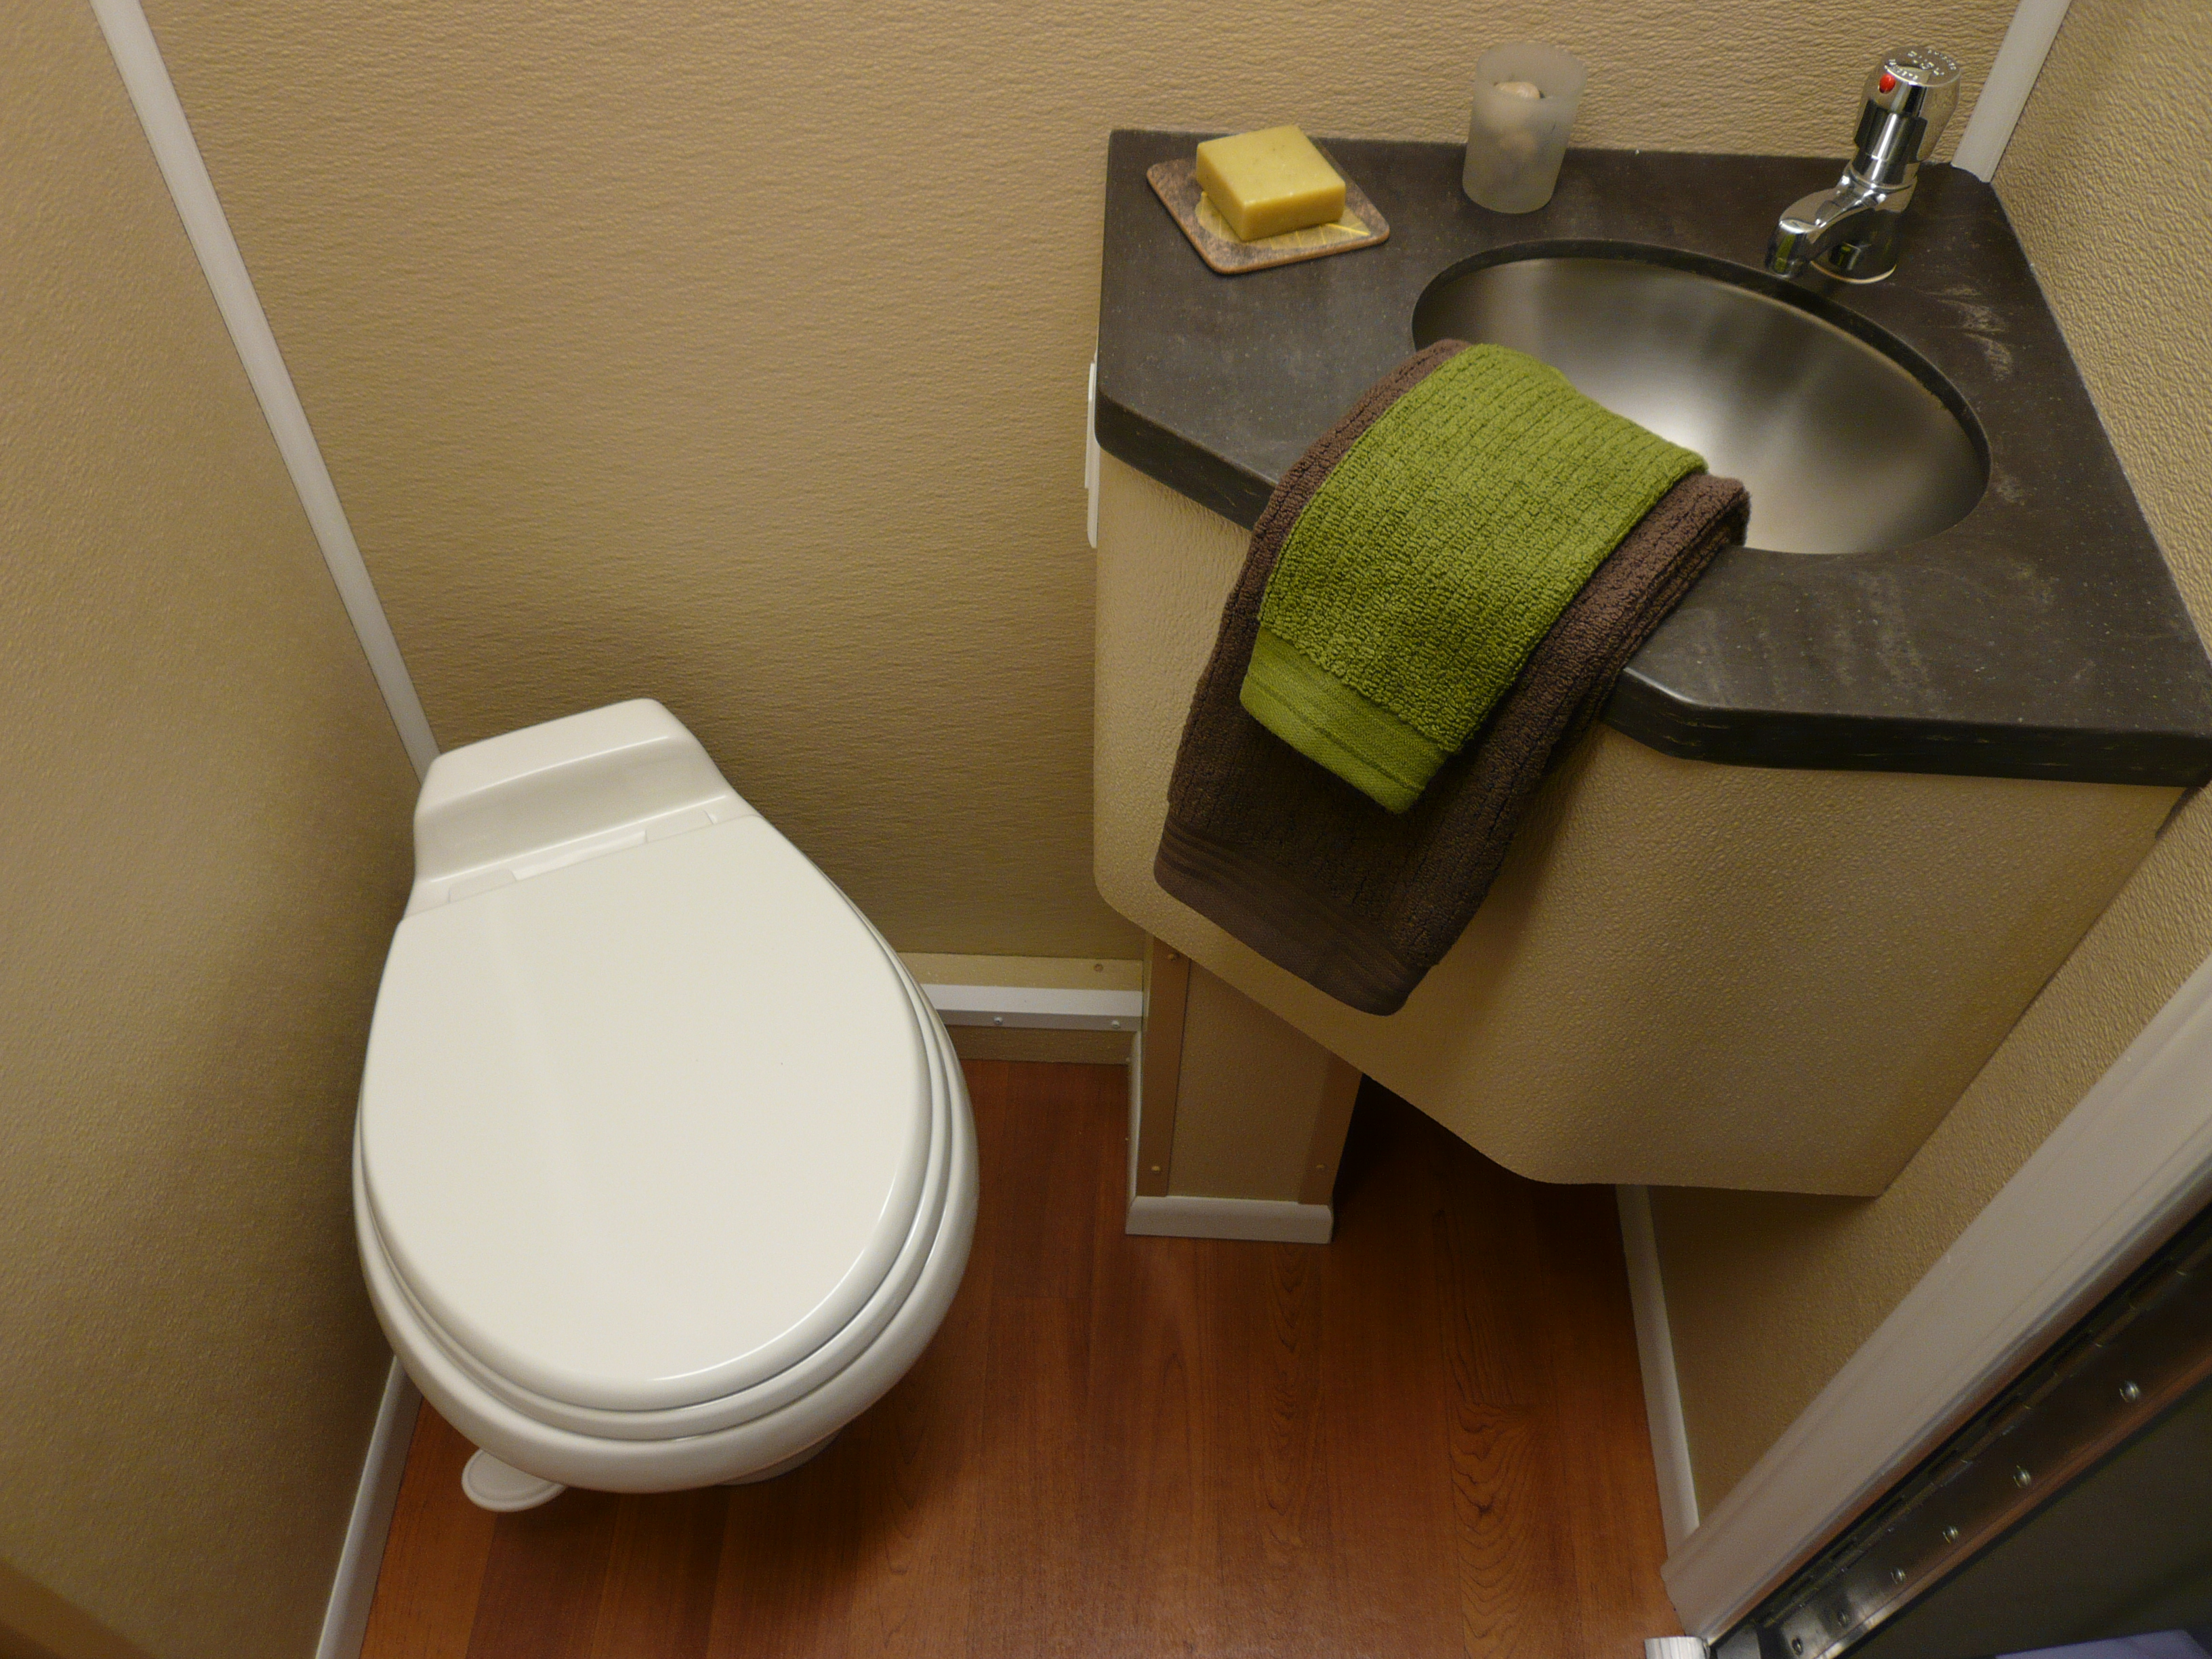 Portable Shower Toilet Combo : New england restroomseducation on the portable toilet